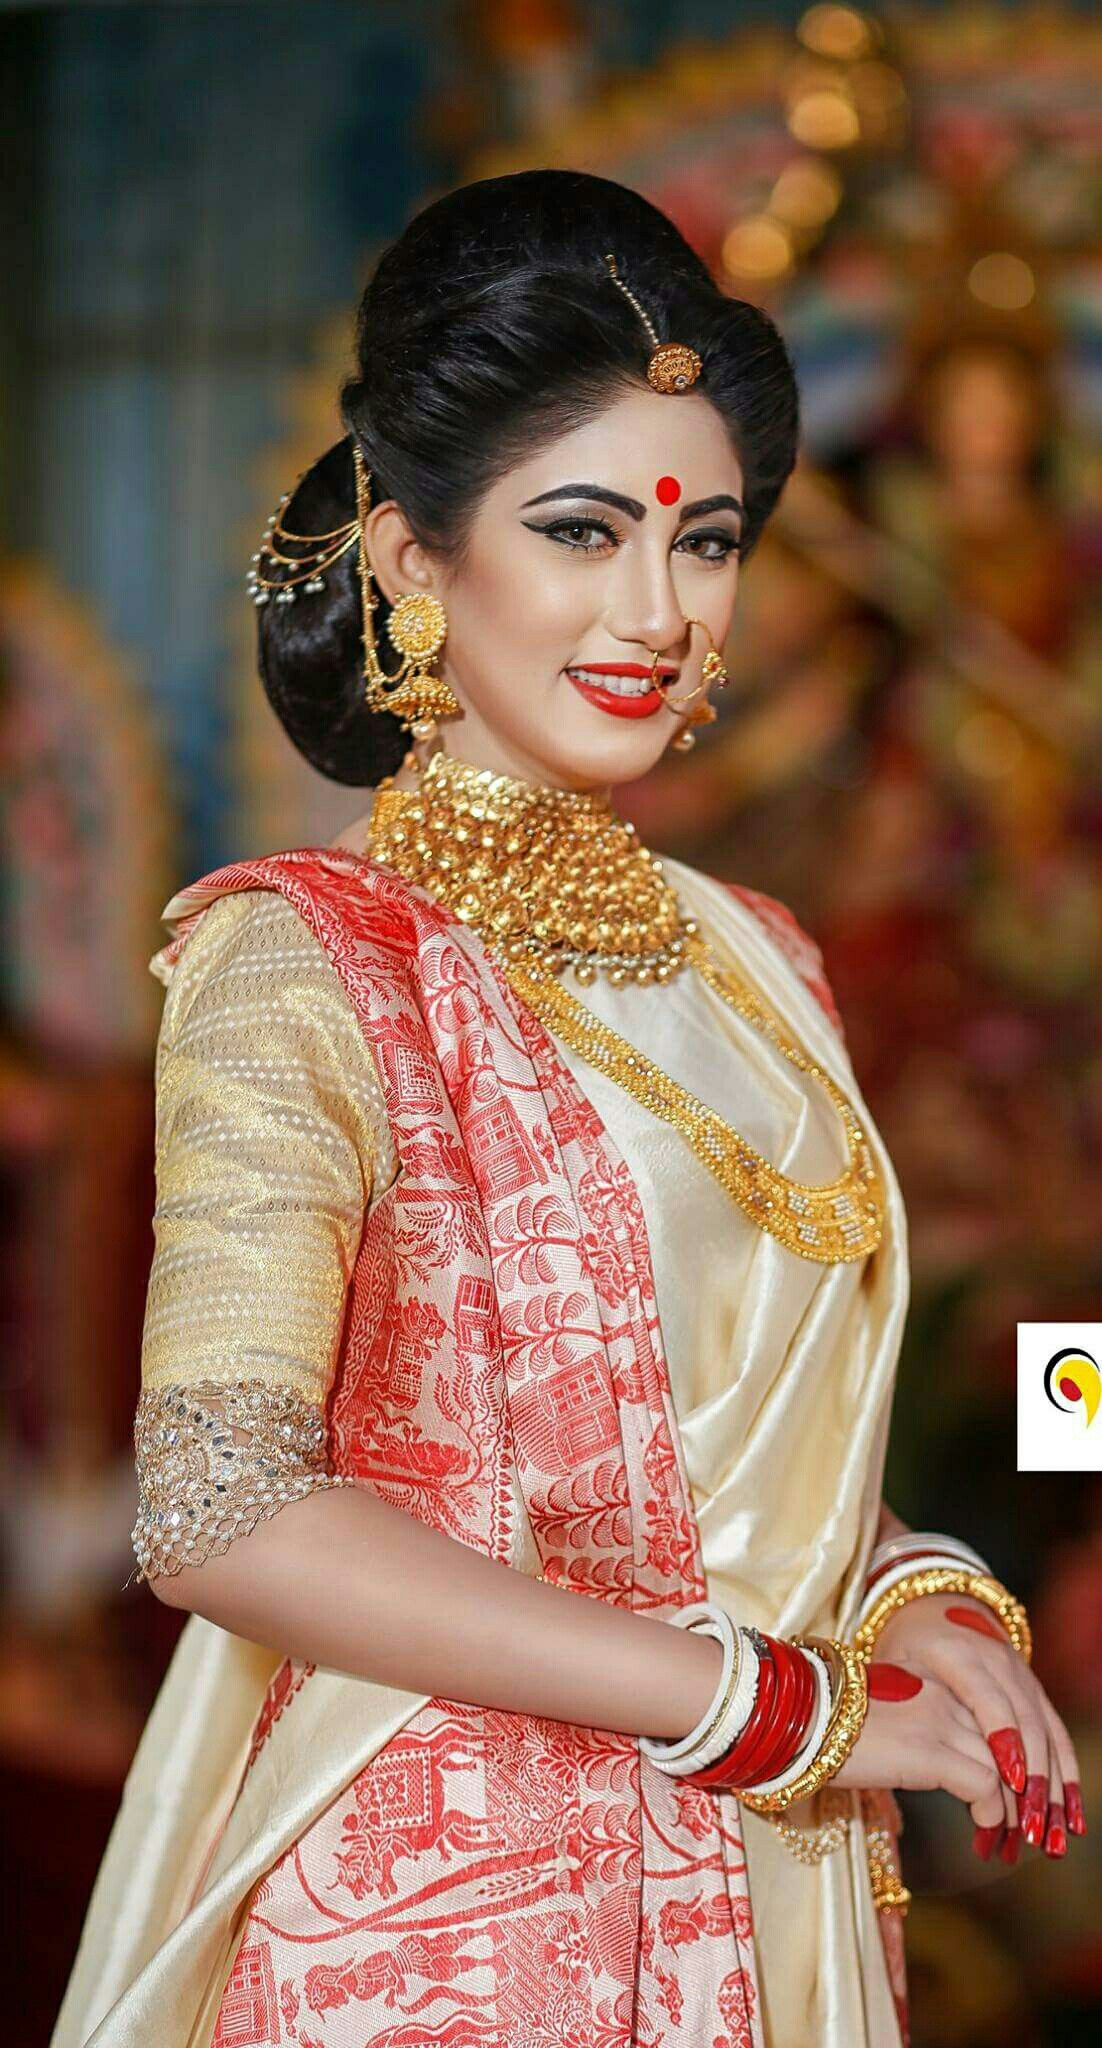 pinterest @yashu kumar /bride beauty | bride beauty in 2019